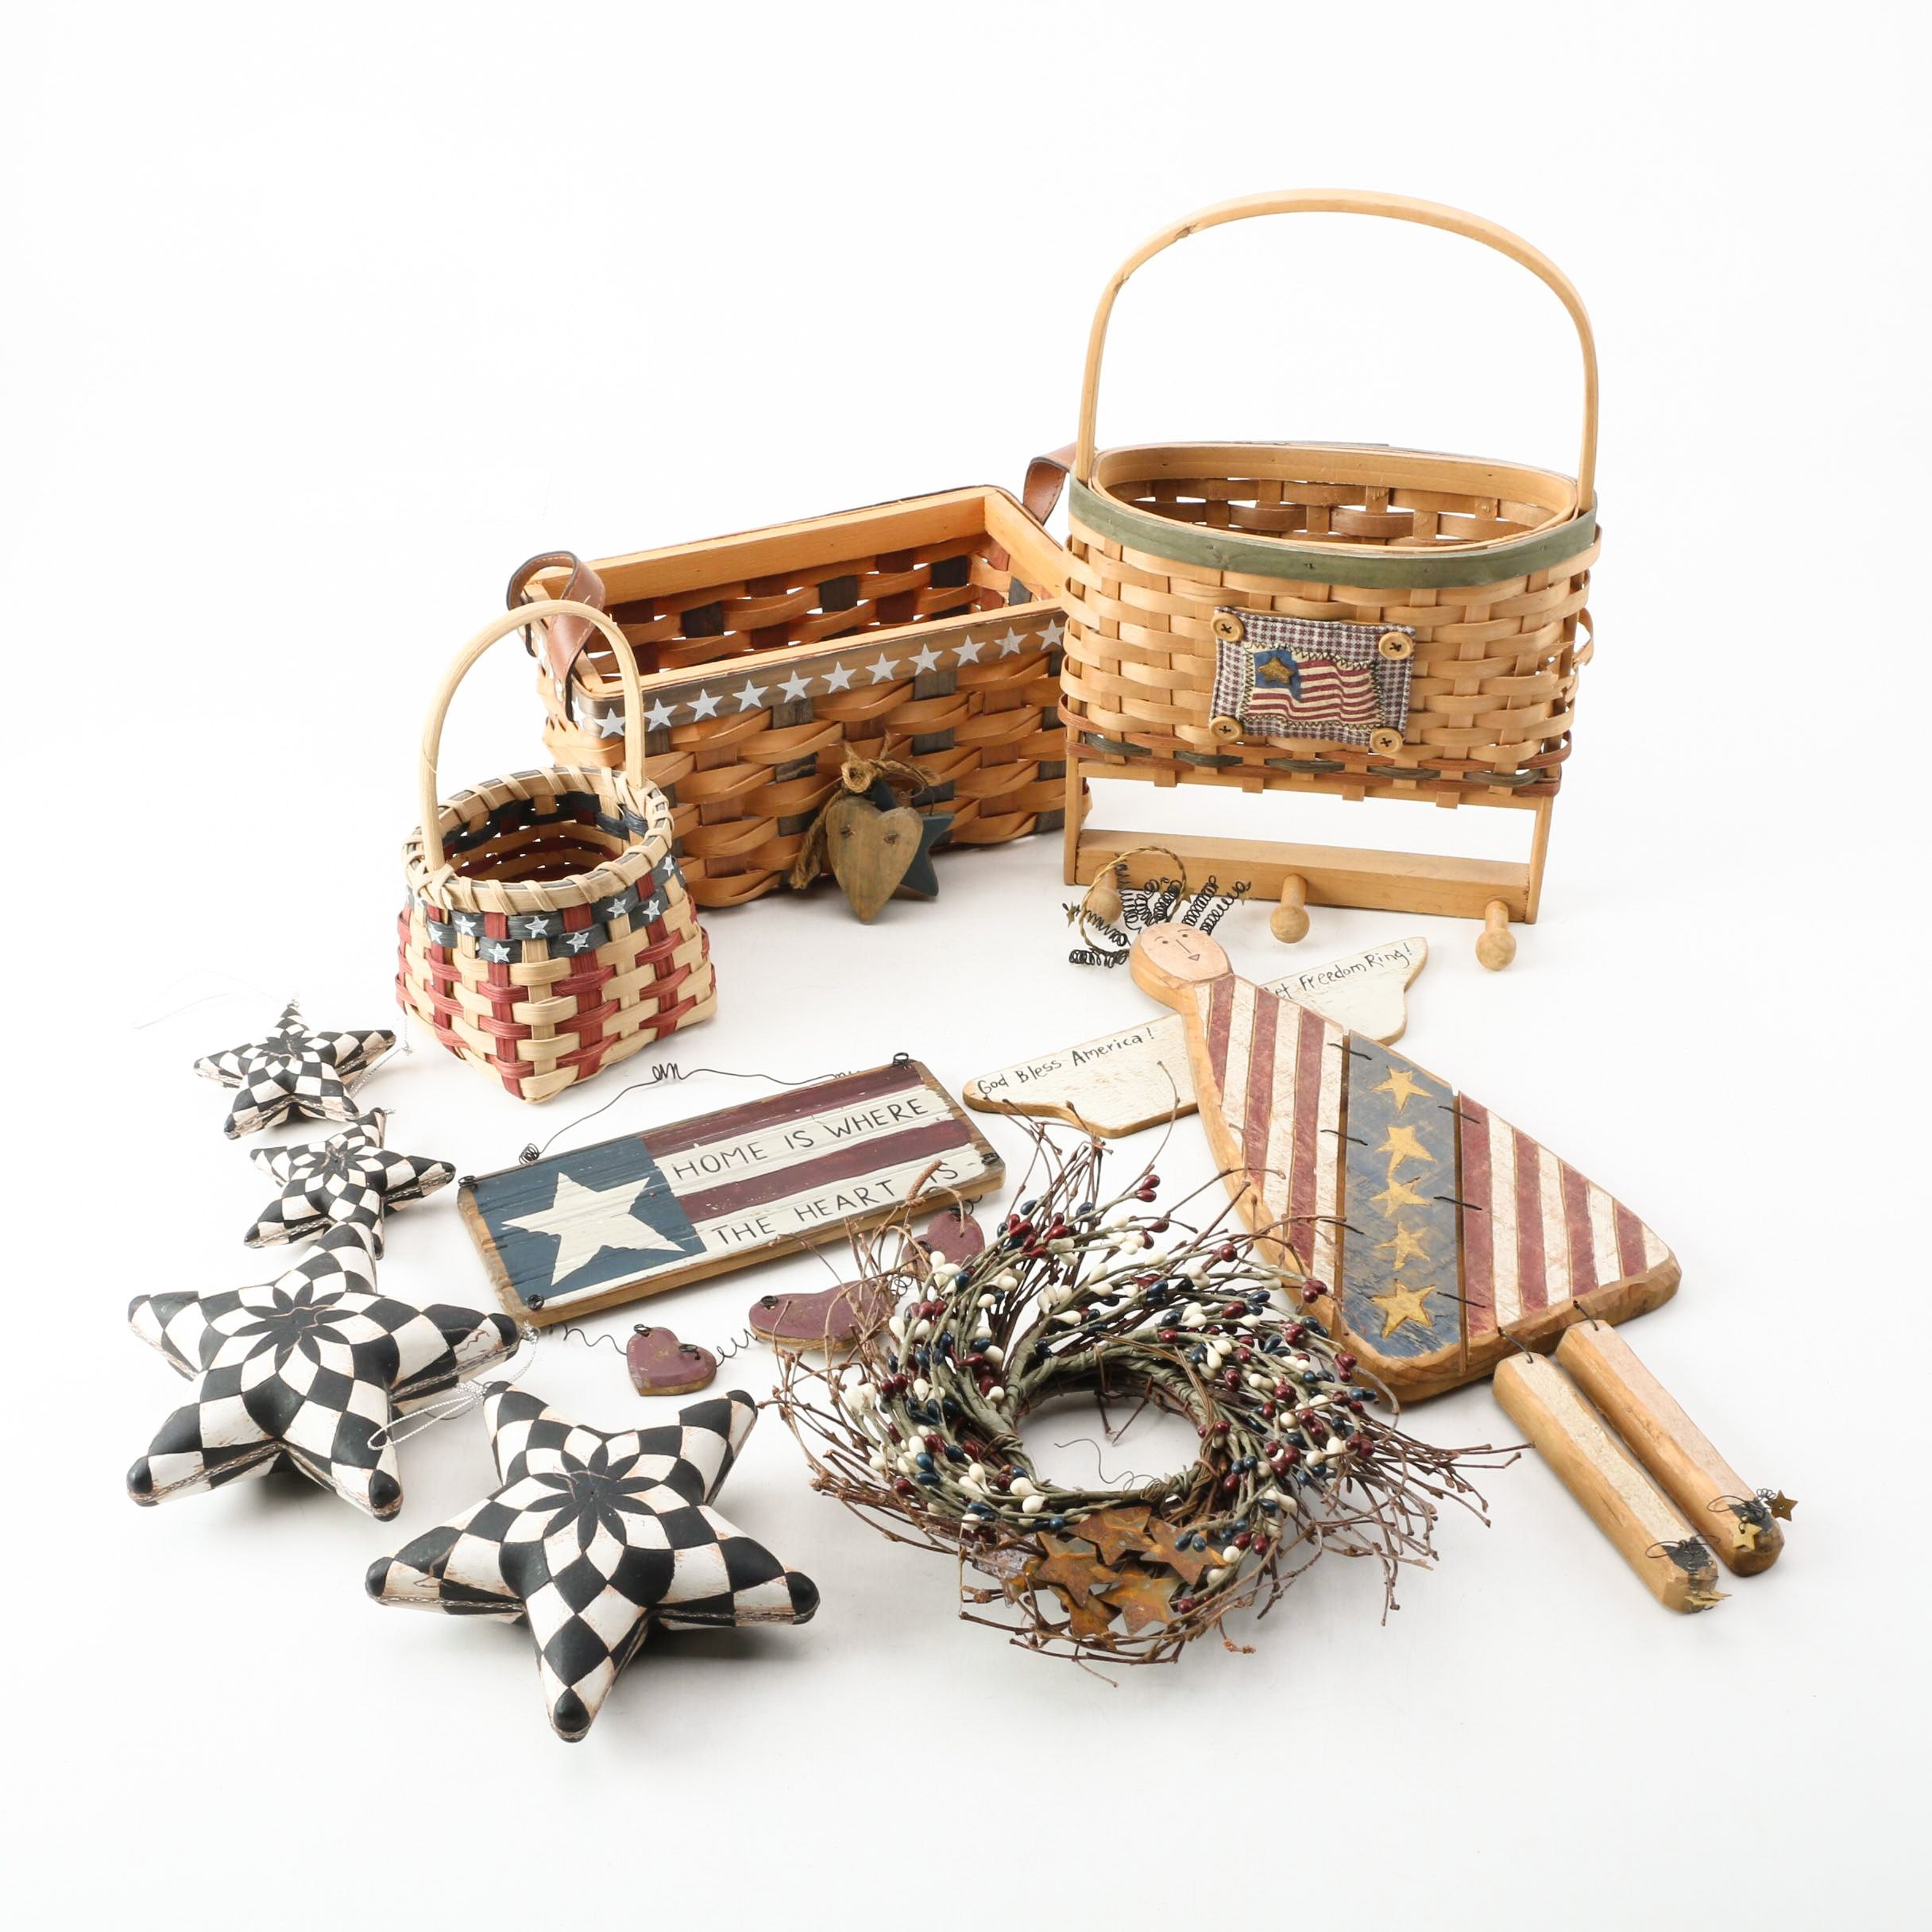 Assorted Baskets and Wooden U.S.A.Themed Decor